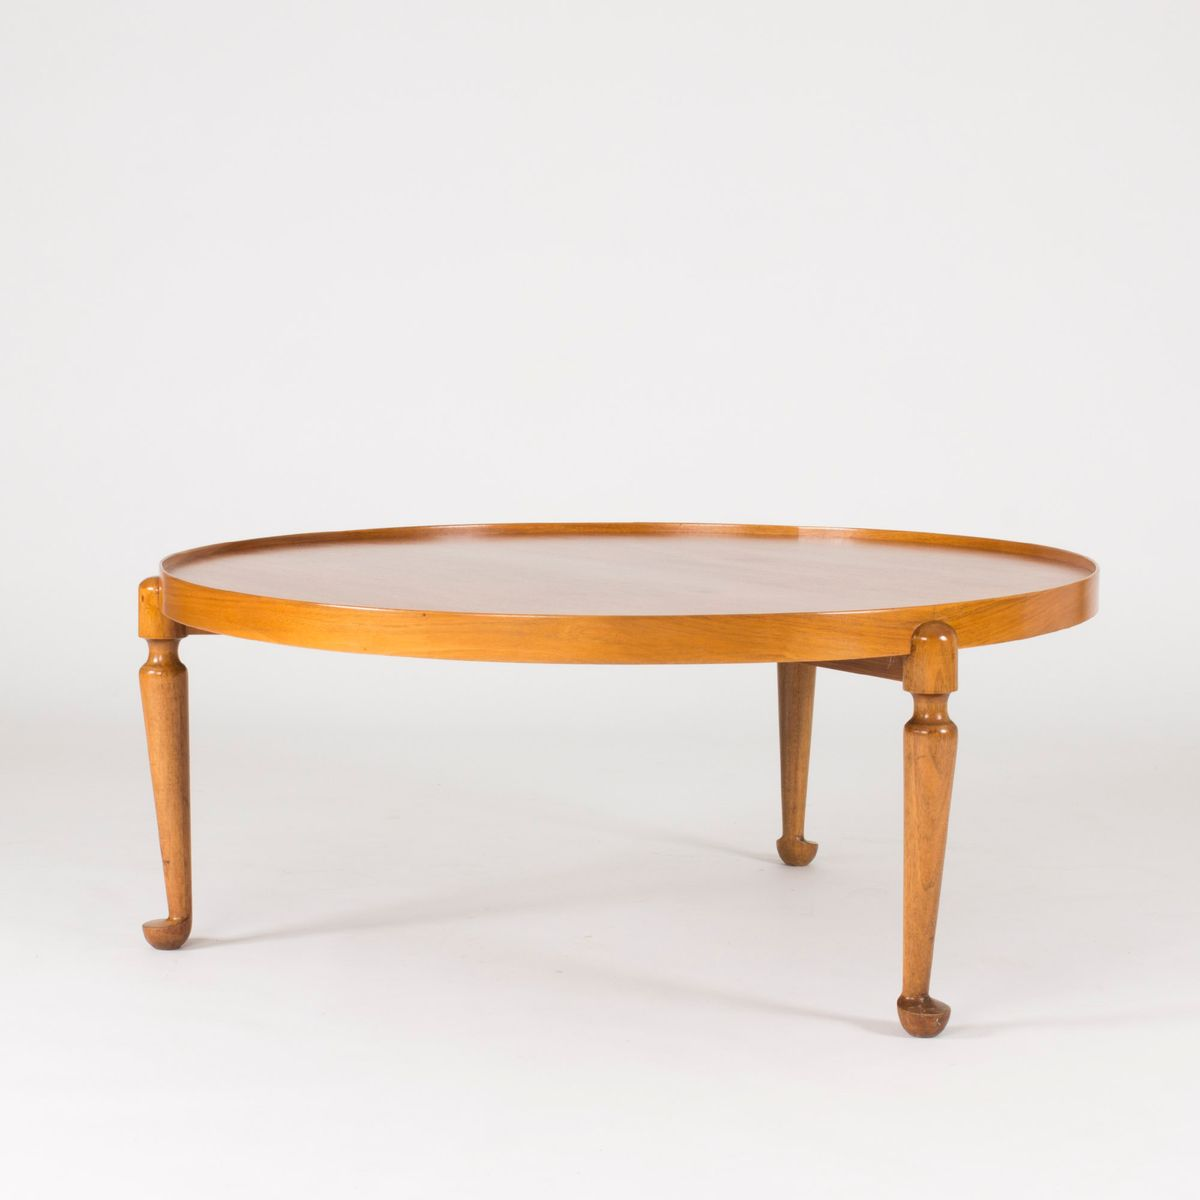 Mid Century Swedish Round Walnut Coffee Table By Josef Frank For Svenskt Tenn For Sale At Pamono